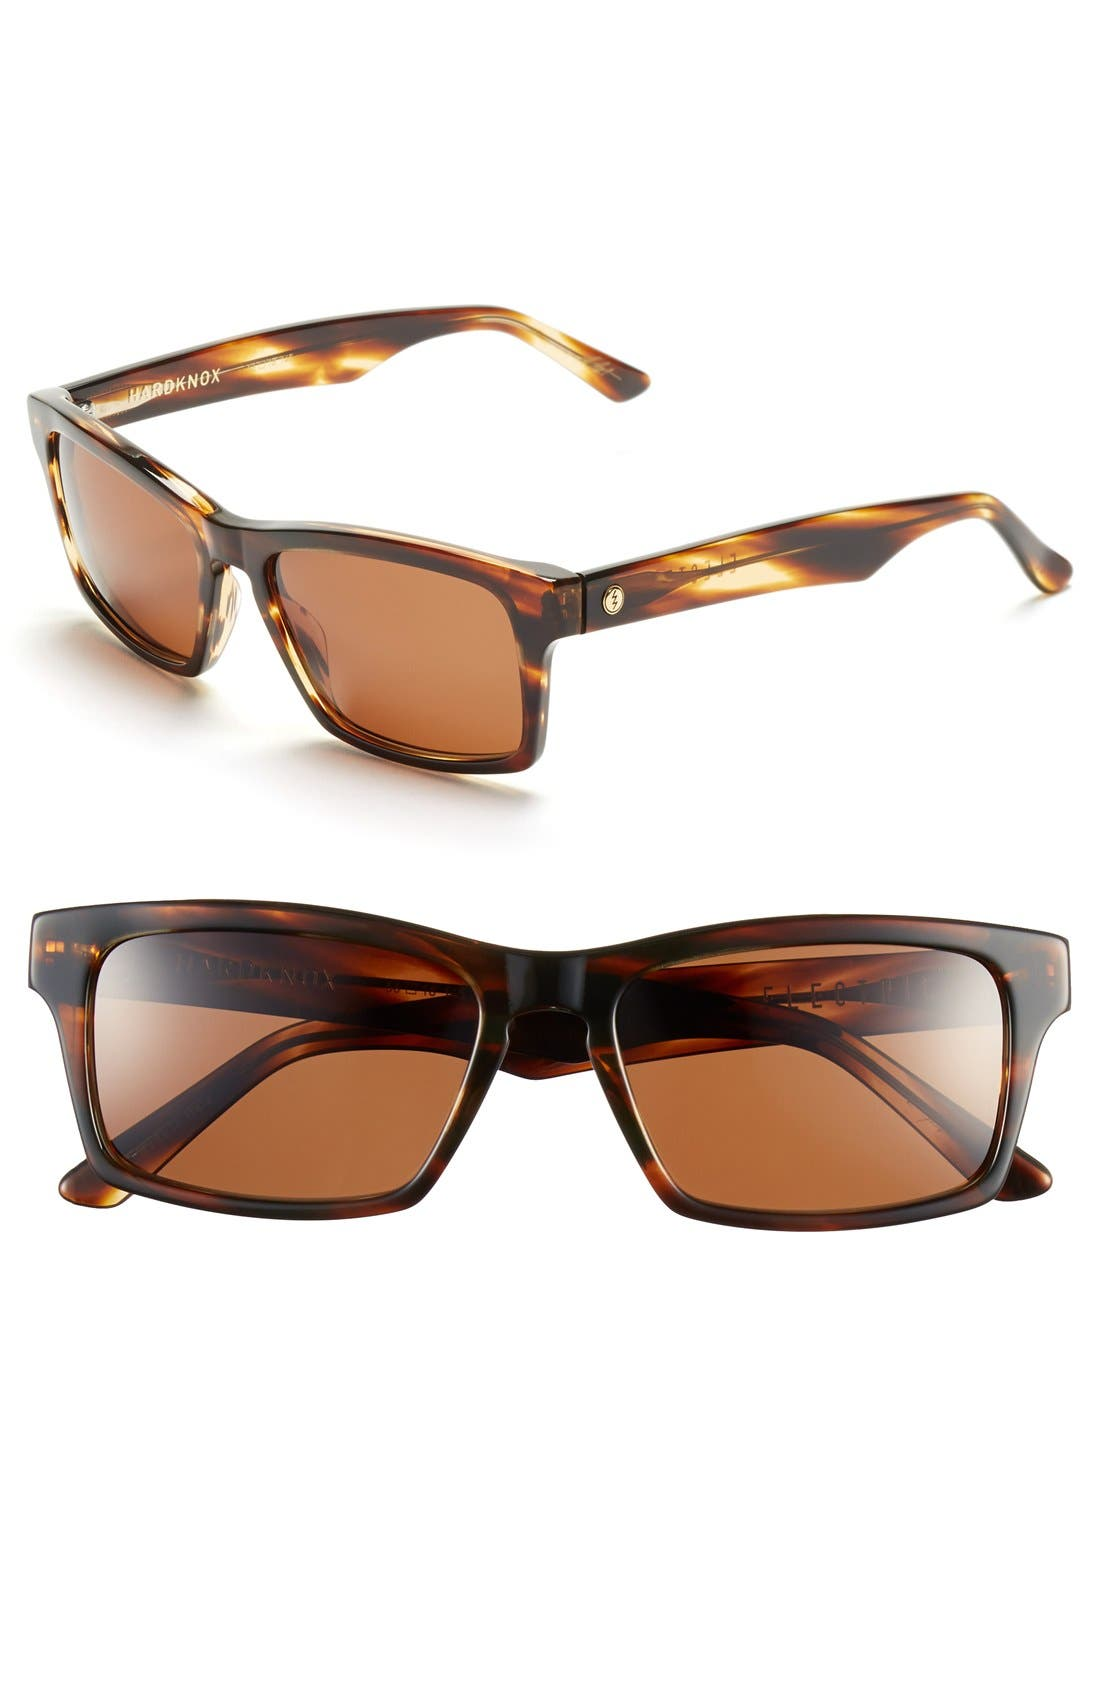 'Hardknox' 56mm Sunglasses,                         Main,                         color, Tortoise Shell/ Bronze